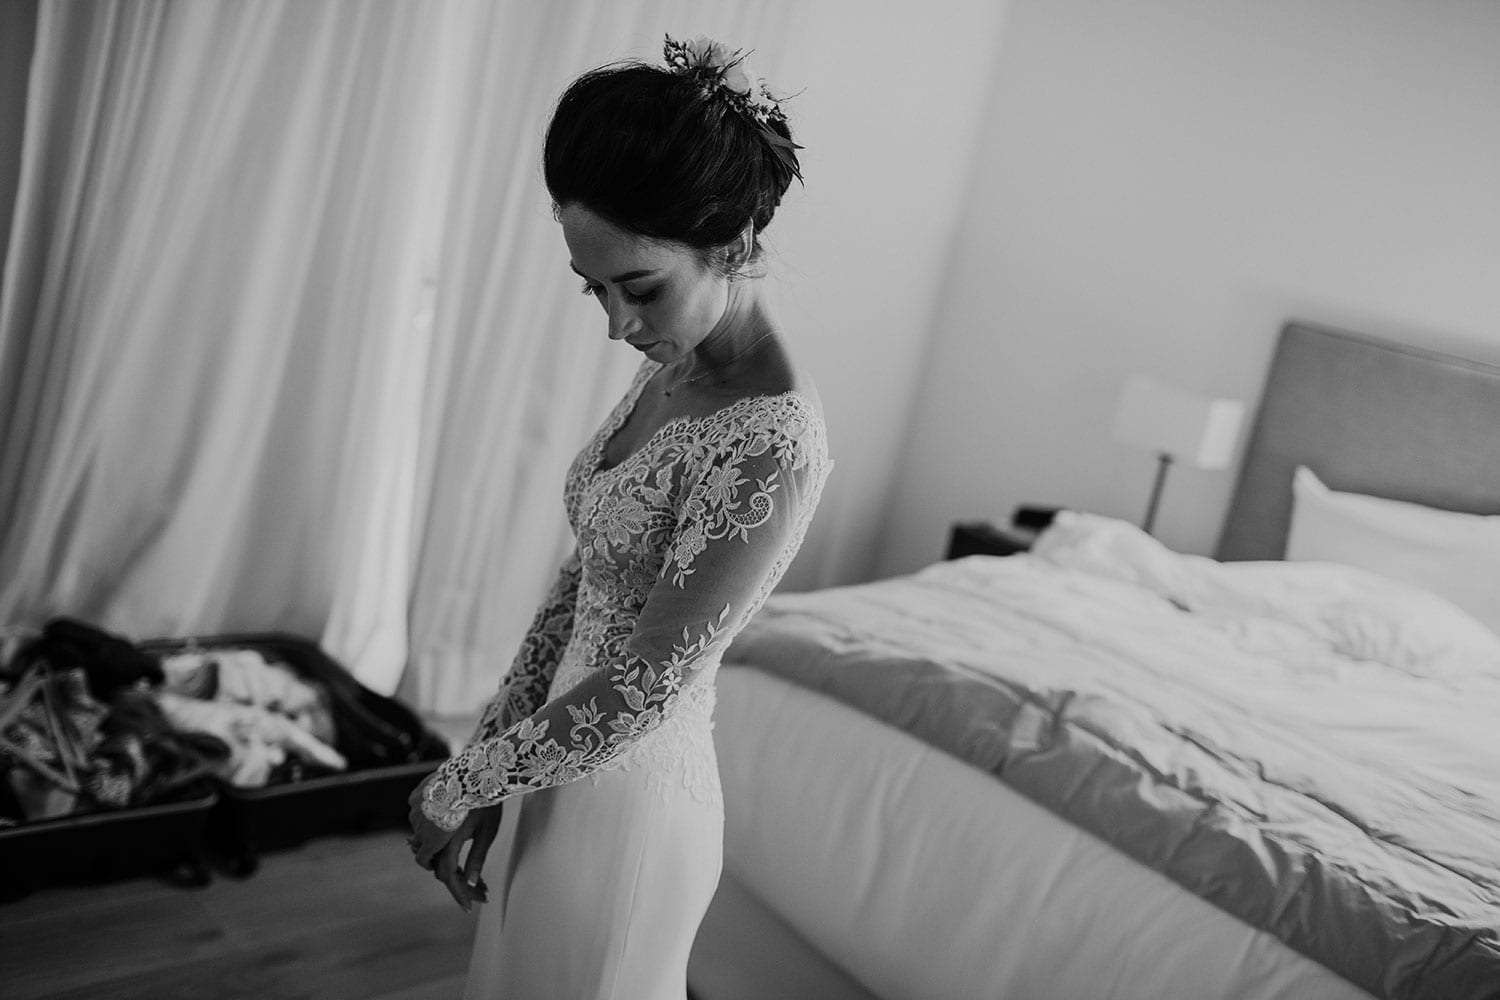 Vinka Design Features Real Weddings - Bride in bespoke custom made wedding gown in black and white